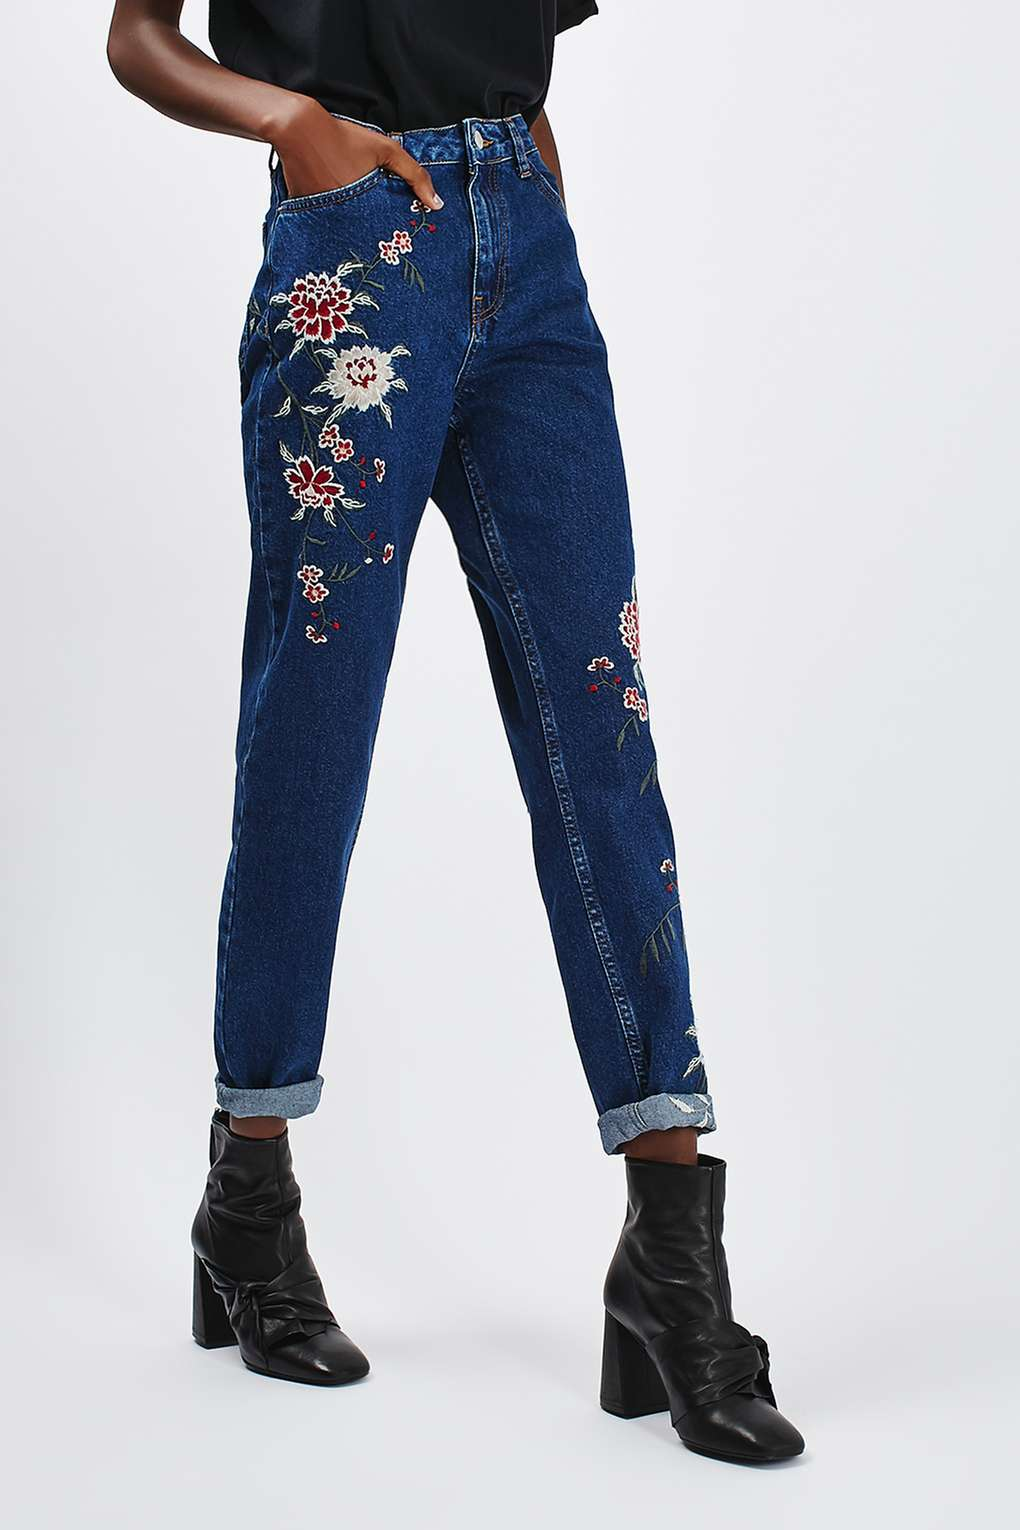 Topshop Moto EMbroidered Jeans.jpg